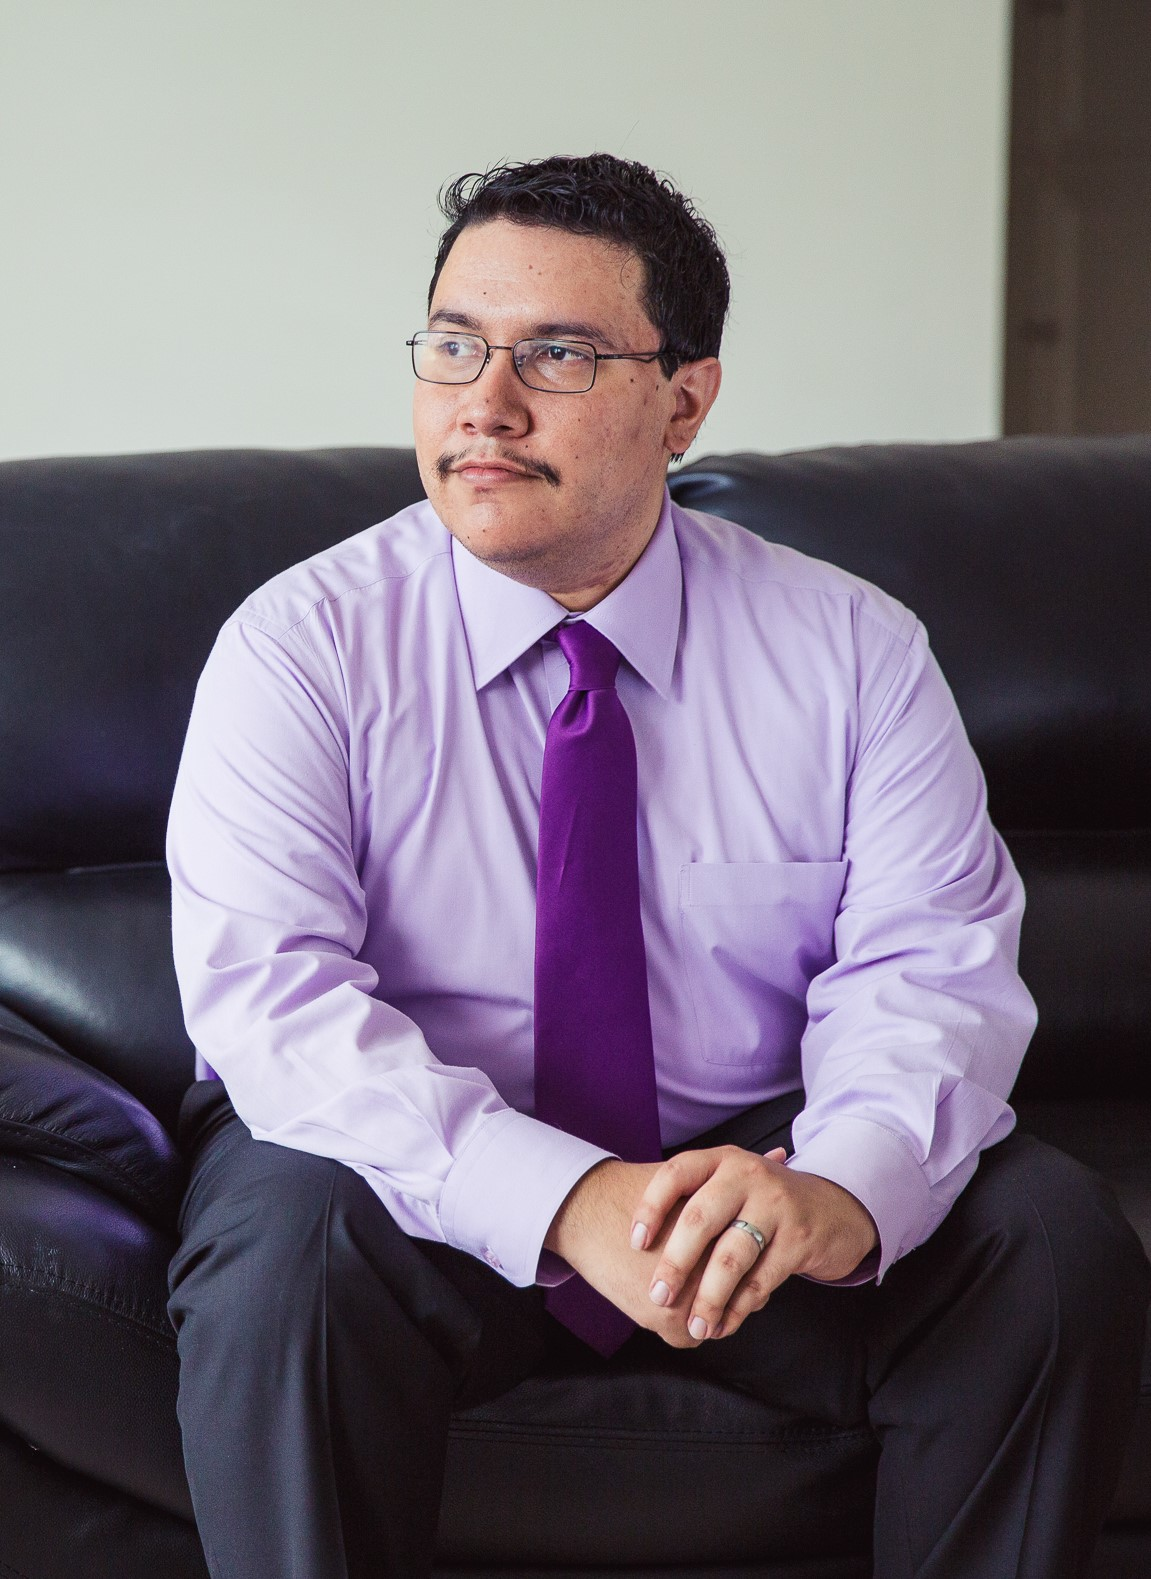 Image Description: A picture of Juan who has tanned skin with a mustache and dark short hair. He is sitting on a black leather couch facing away from the camera with his hands clasping each other, and the wall behind him is beige. He is wearing black and silver glasses, a light purple dress shirt with a darker purple tie, on his left hand ring finger he is wearing a silver wedding band.